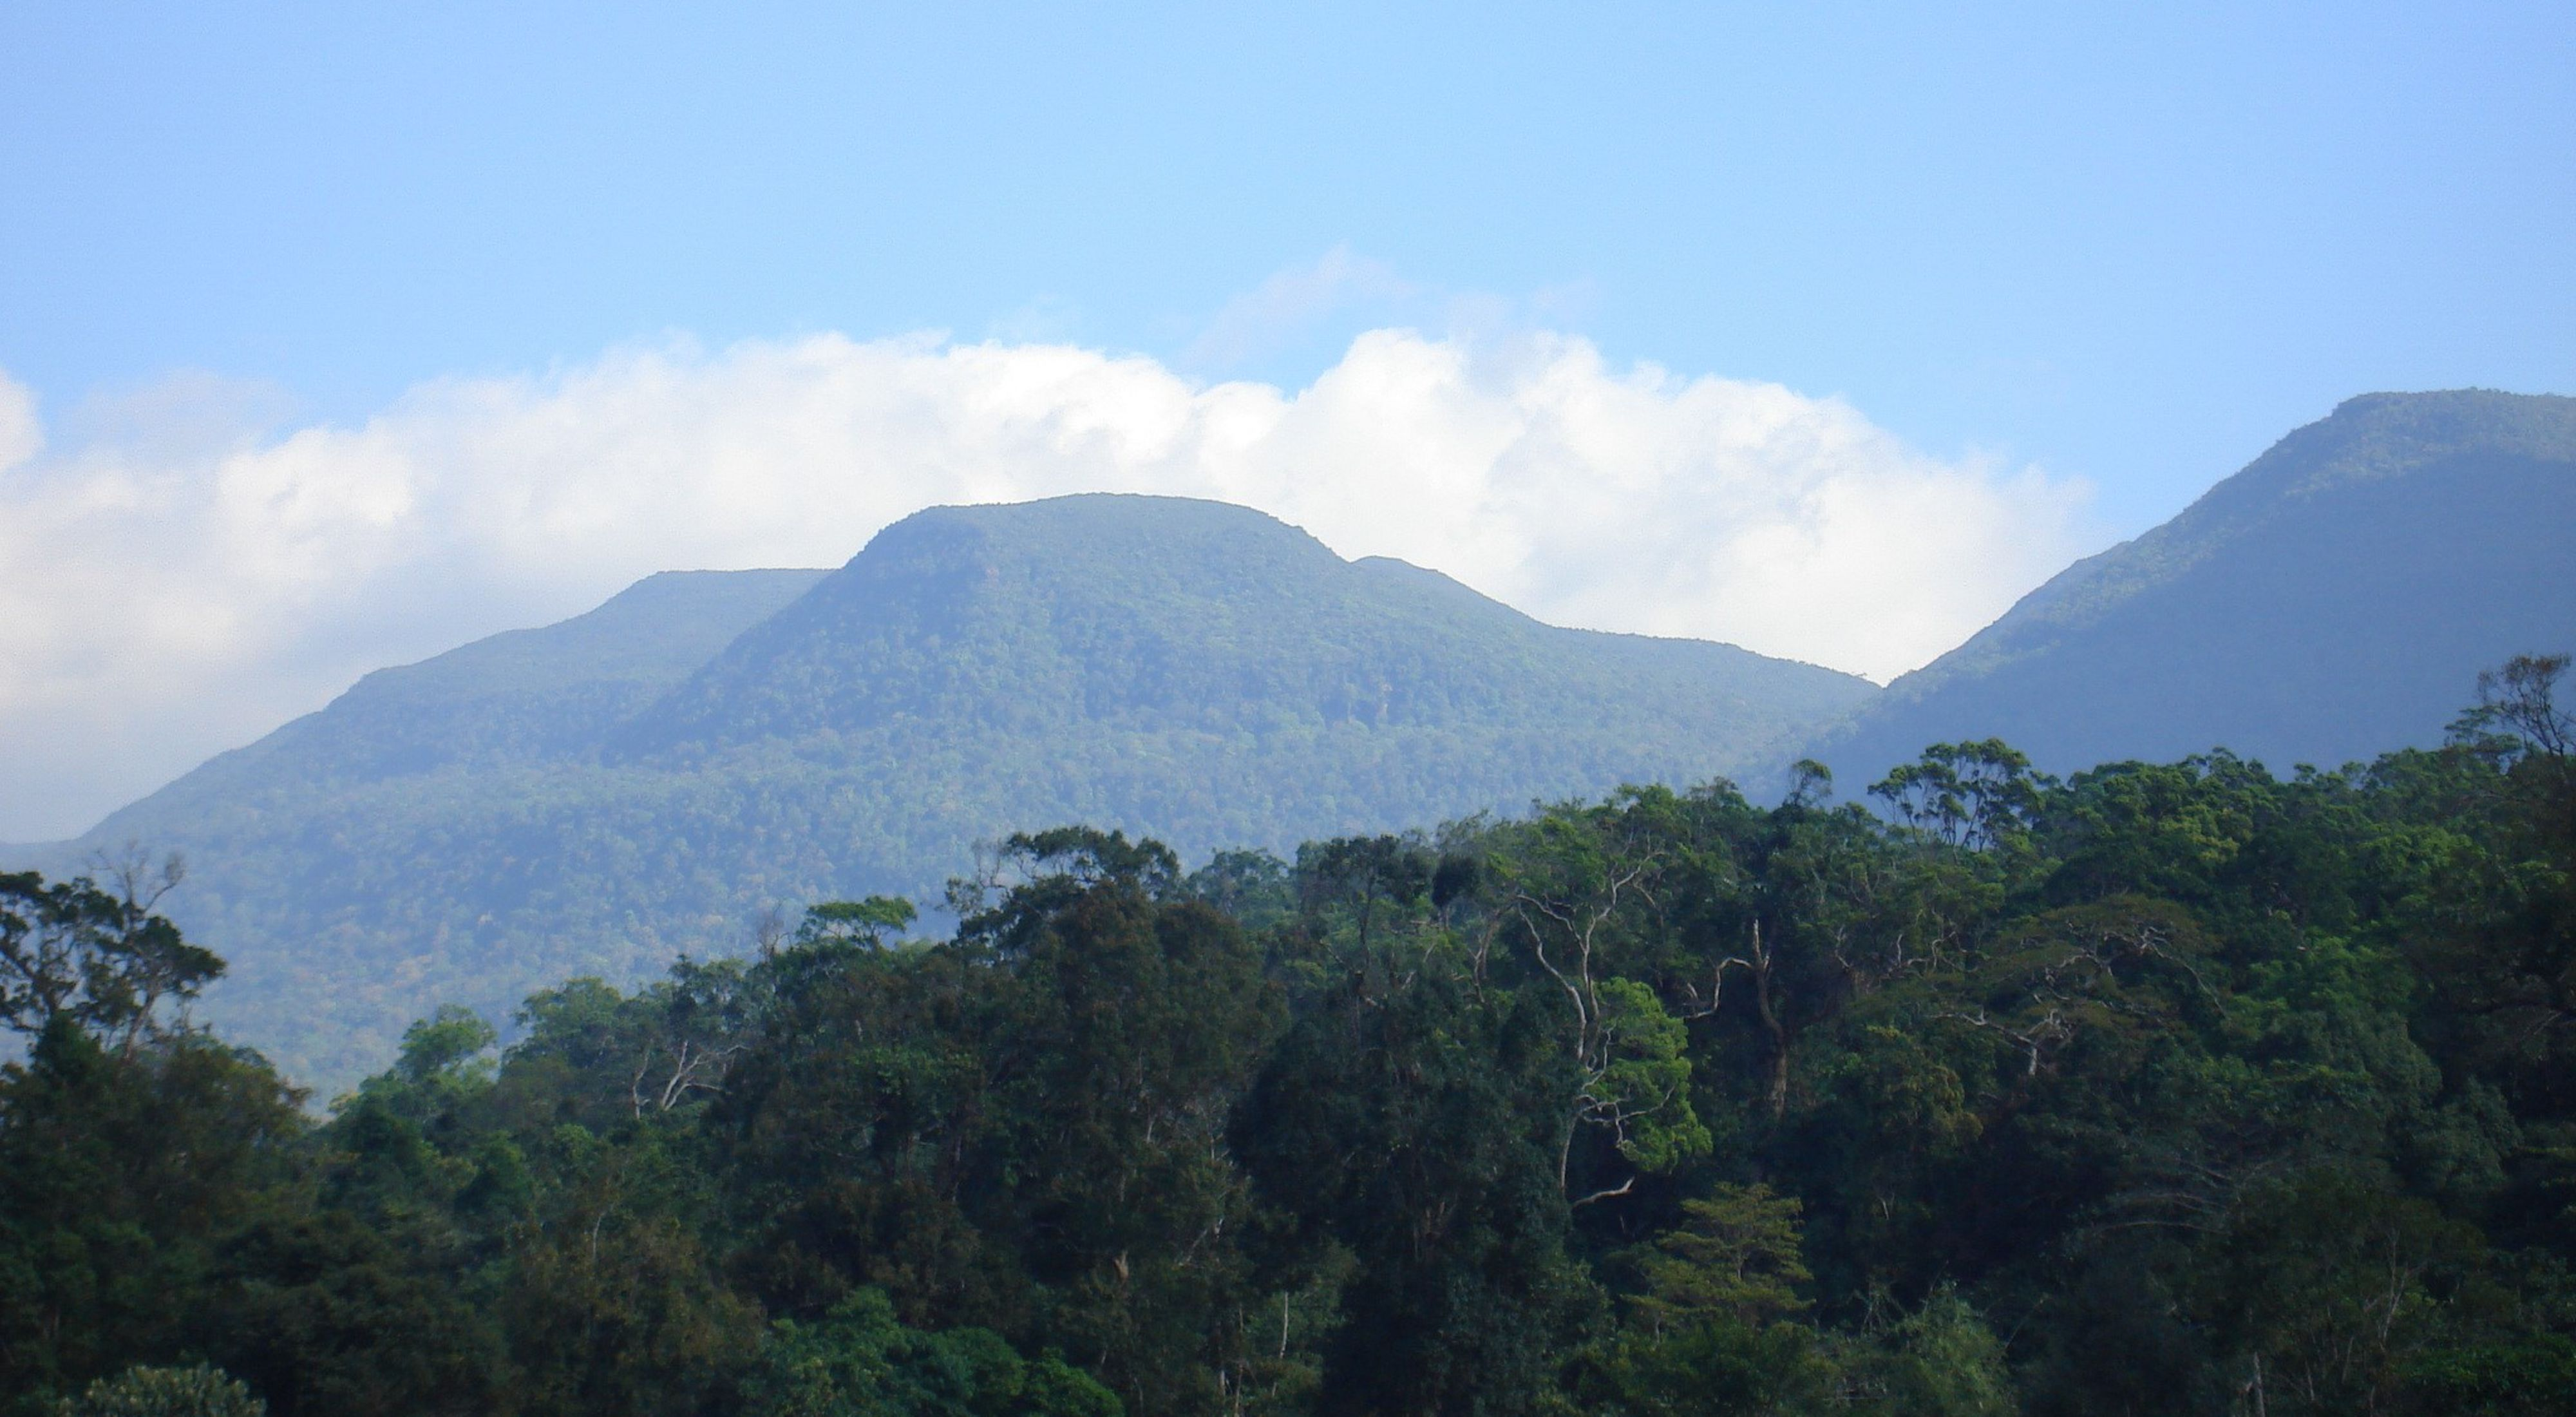 jungle mountains under a blue sky